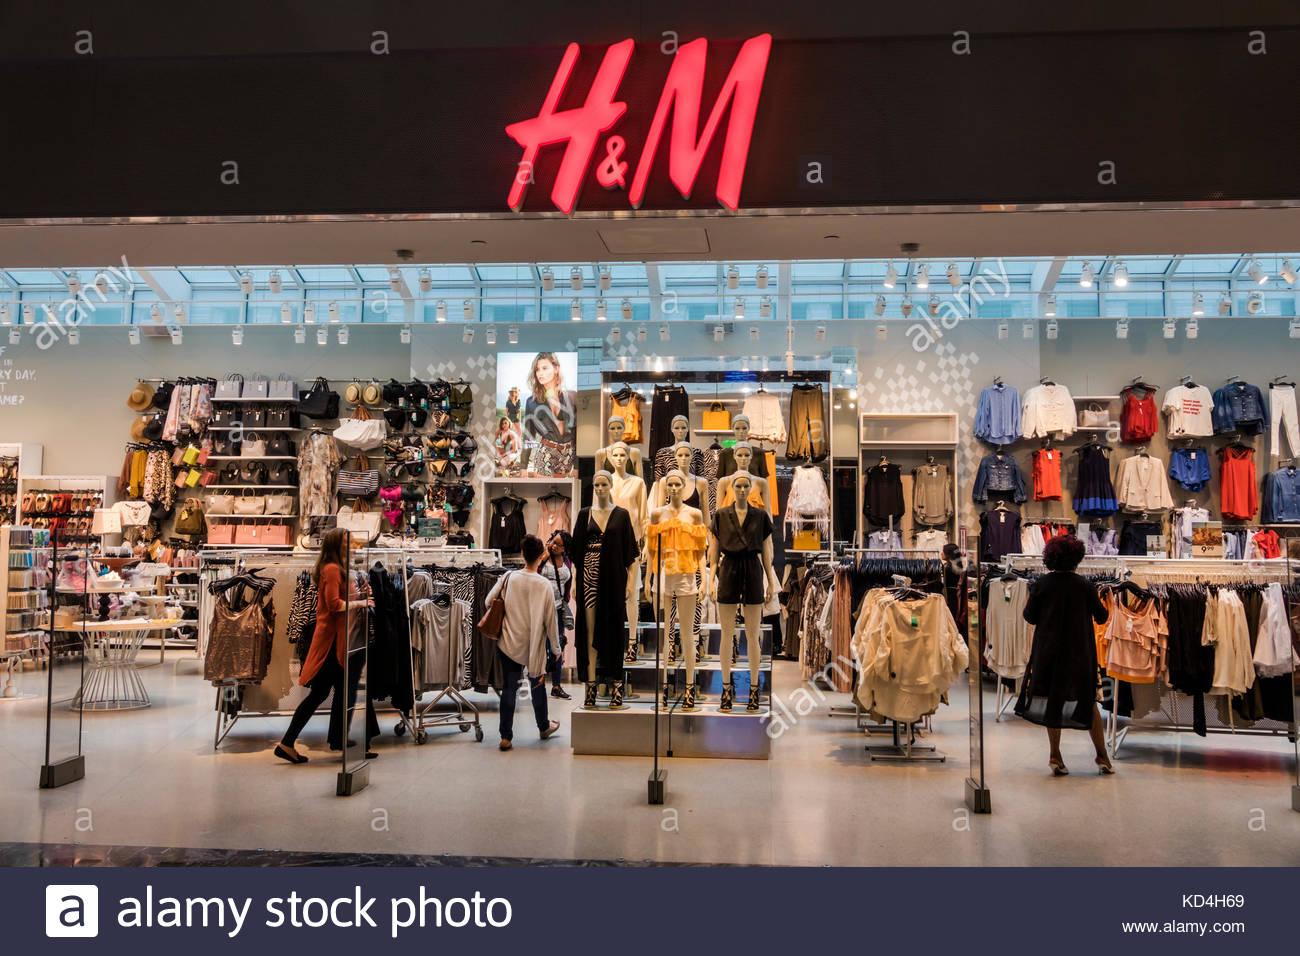 Washington DC District of Columbia Union Station terminal H&M retailer on-trend clothing fashion store shopping - Stock Image